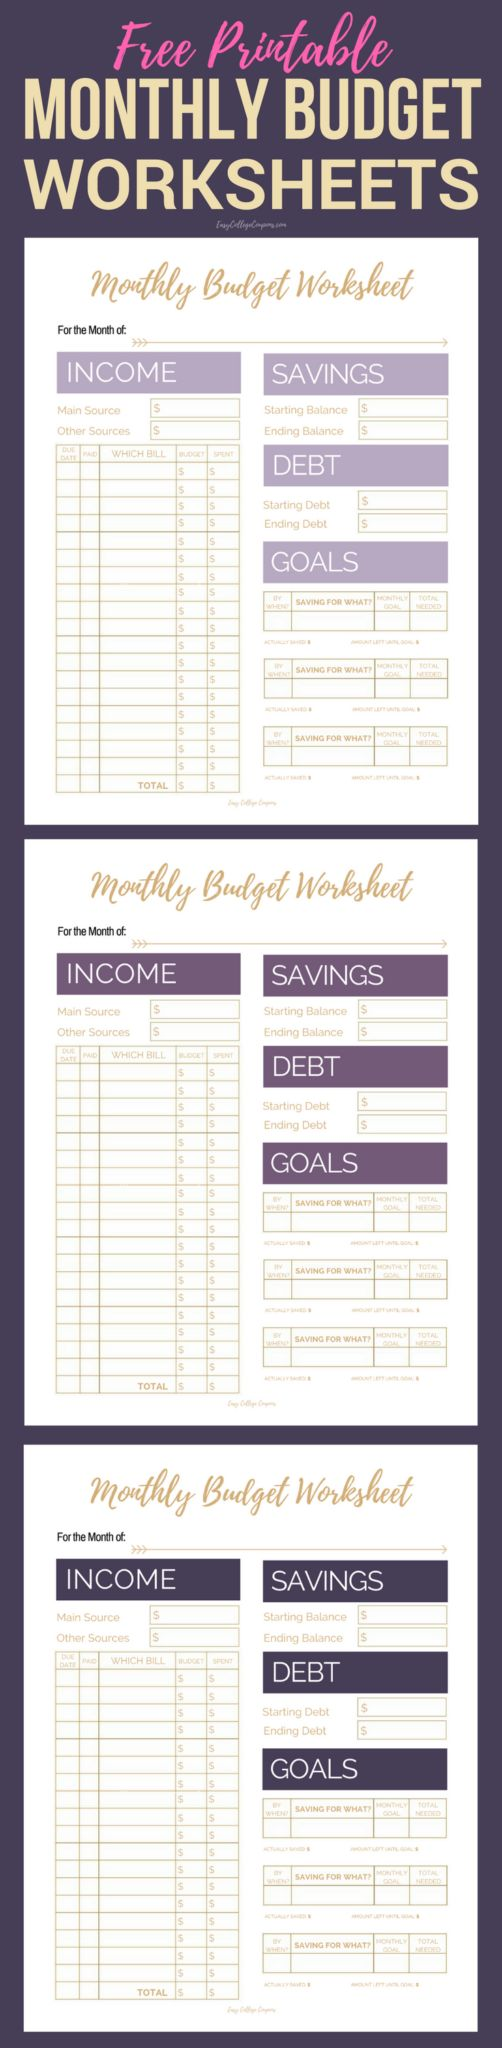 Free Printable Budget Worksheet, Sheets, Planner | Simple College Budgeting | Finance, Saving Money #budeting #budgetlife #frugalliving #freeprintables #printables